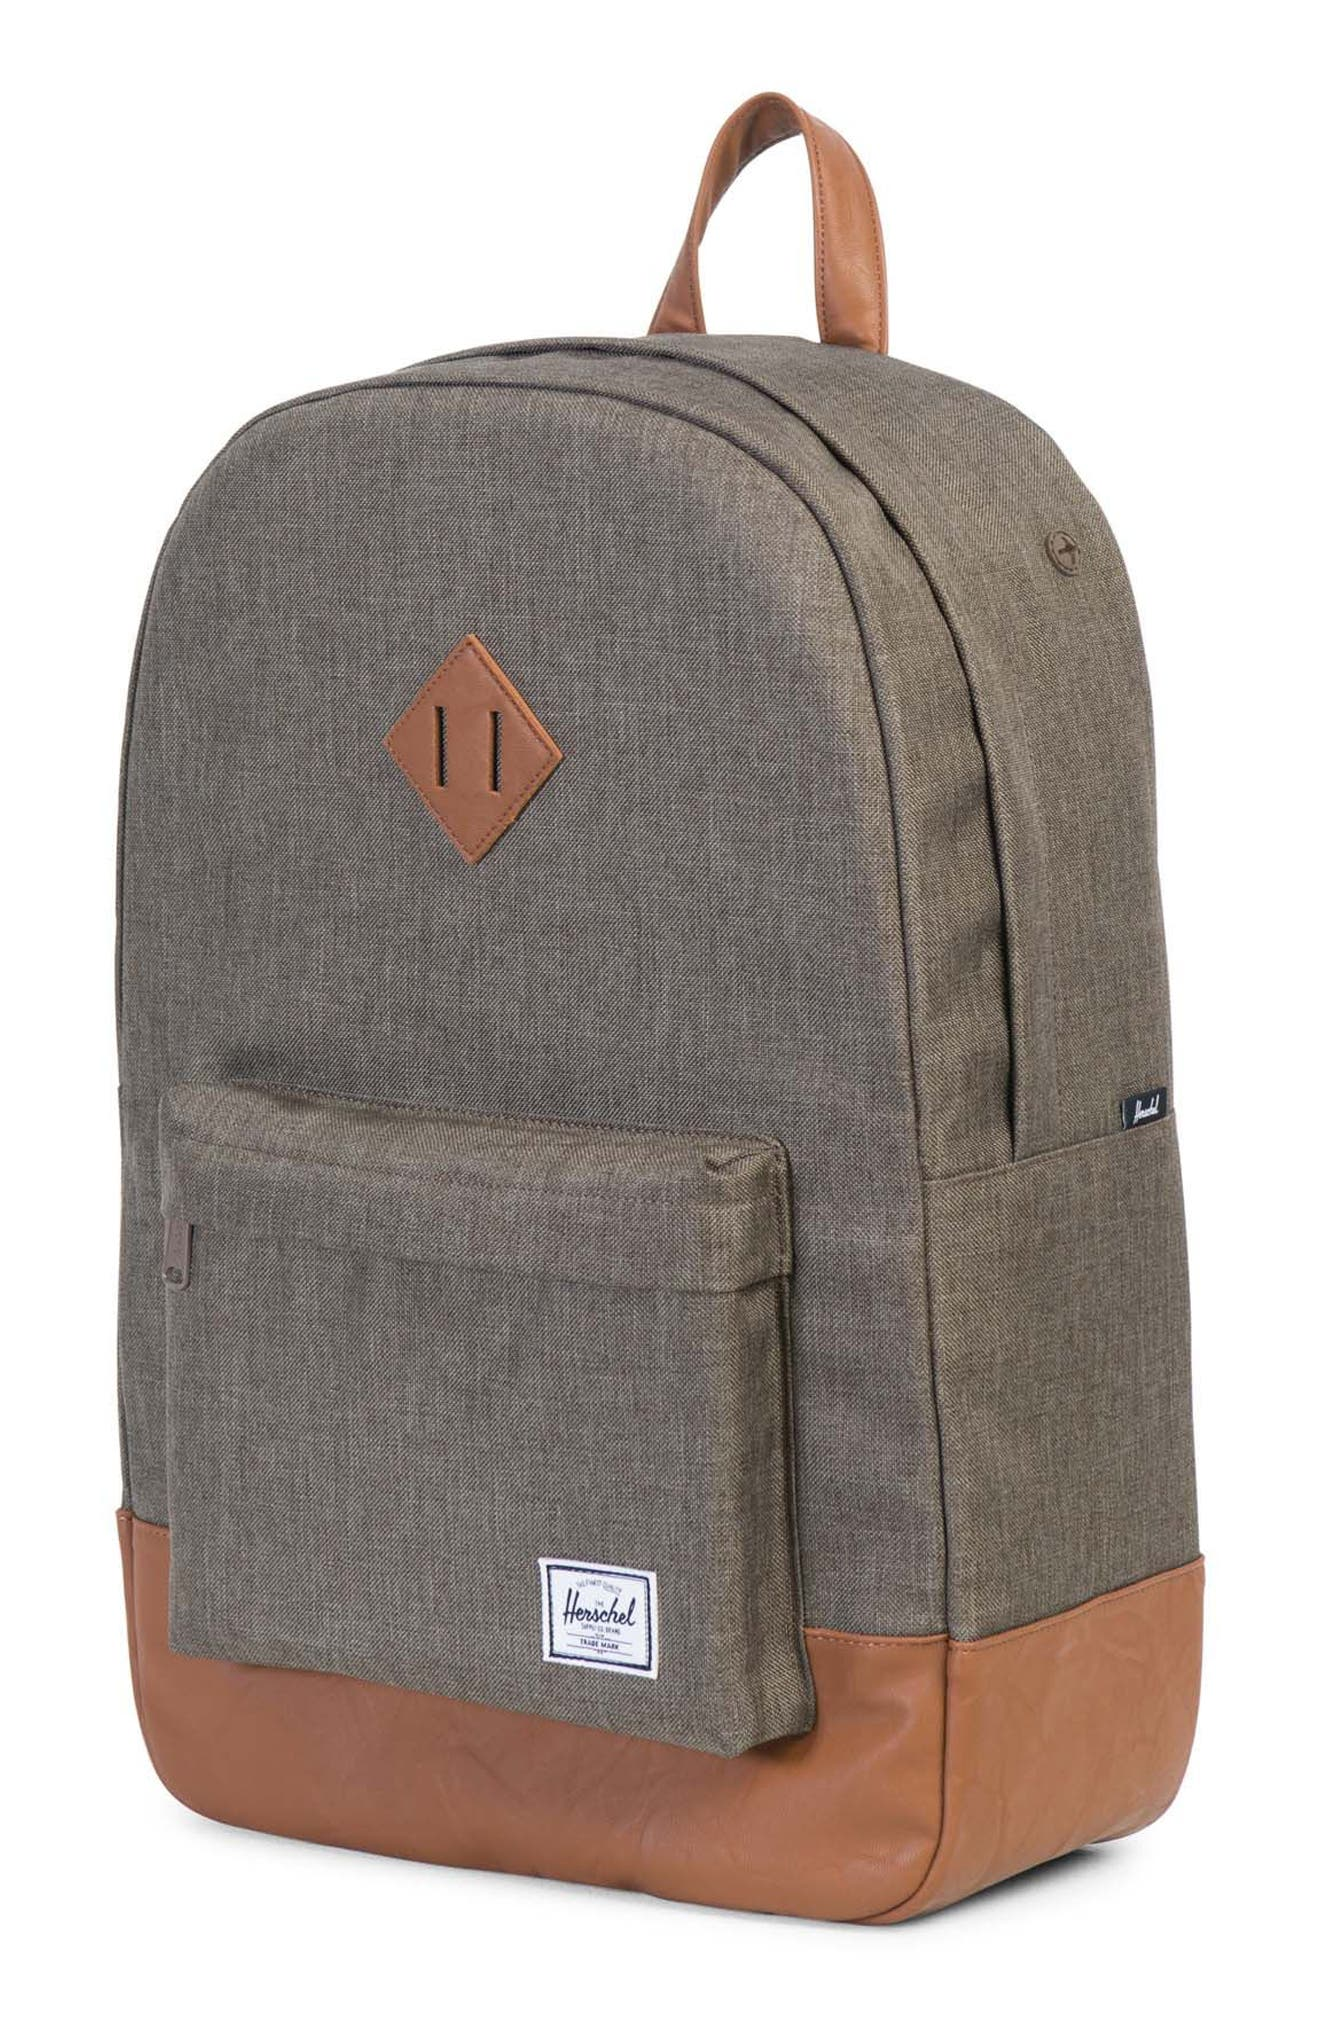 Heritage Backpack,                             Alternate thumbnail 4, color,                             Canteen Crosshatch/ Tan